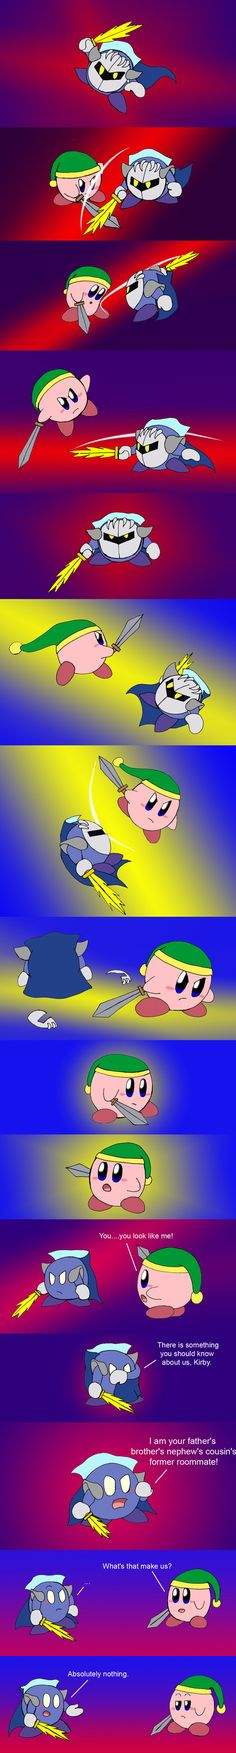 Kirby vs Meta Knight by Rainbow-Boa.deviantart.com on @DeviantArt Oh Pfffttt!!!!! XD